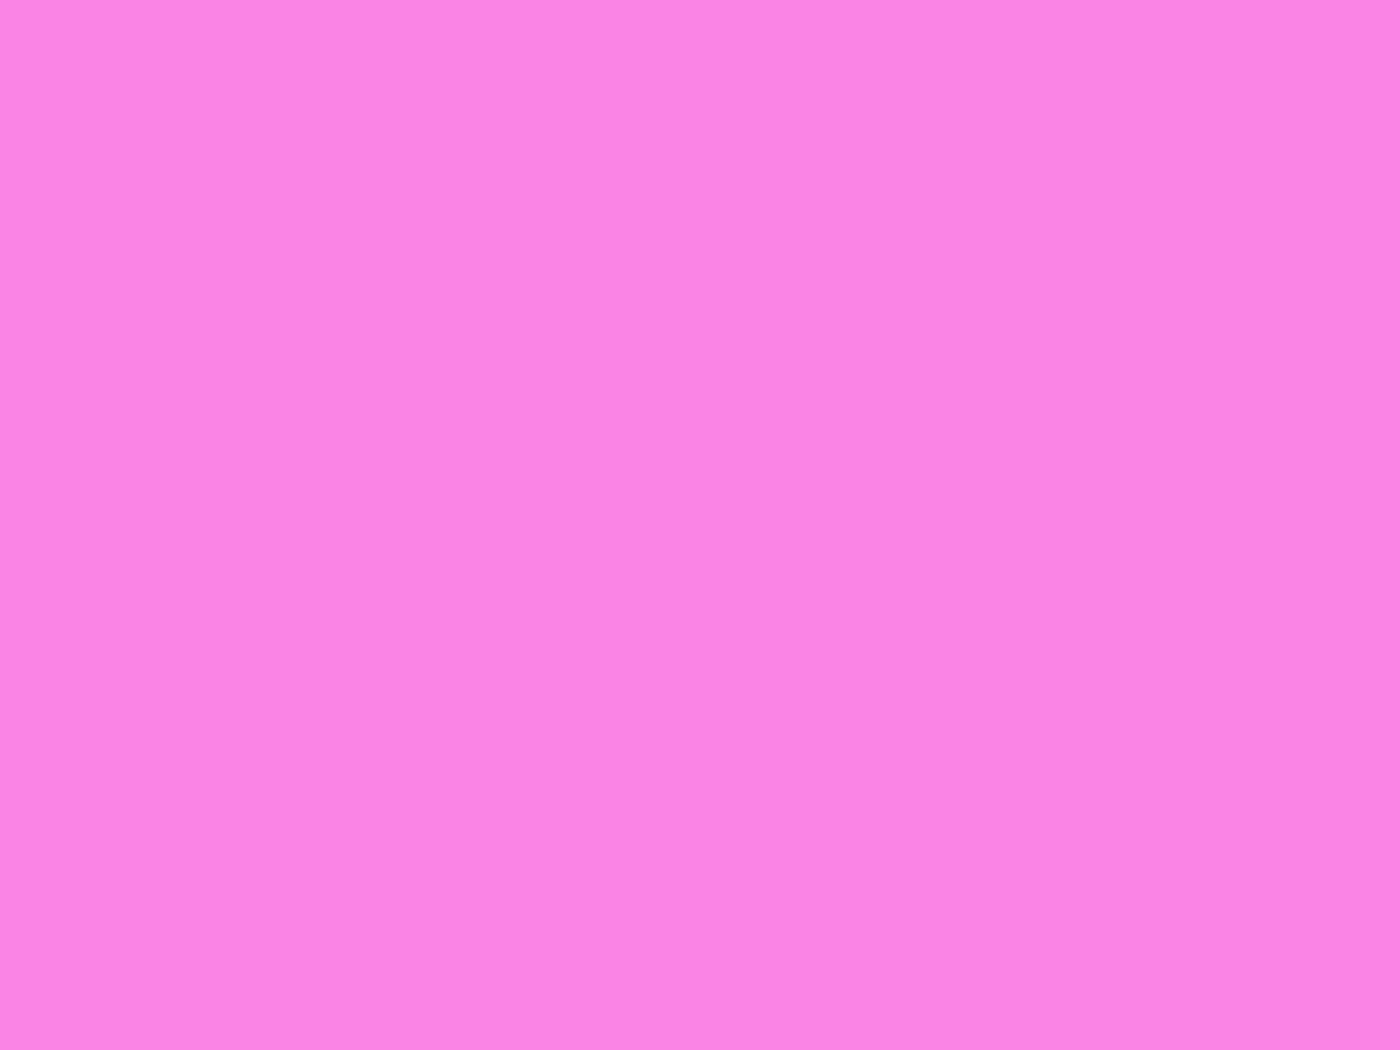 1400x1050 Pale Magenta Solid Color Background